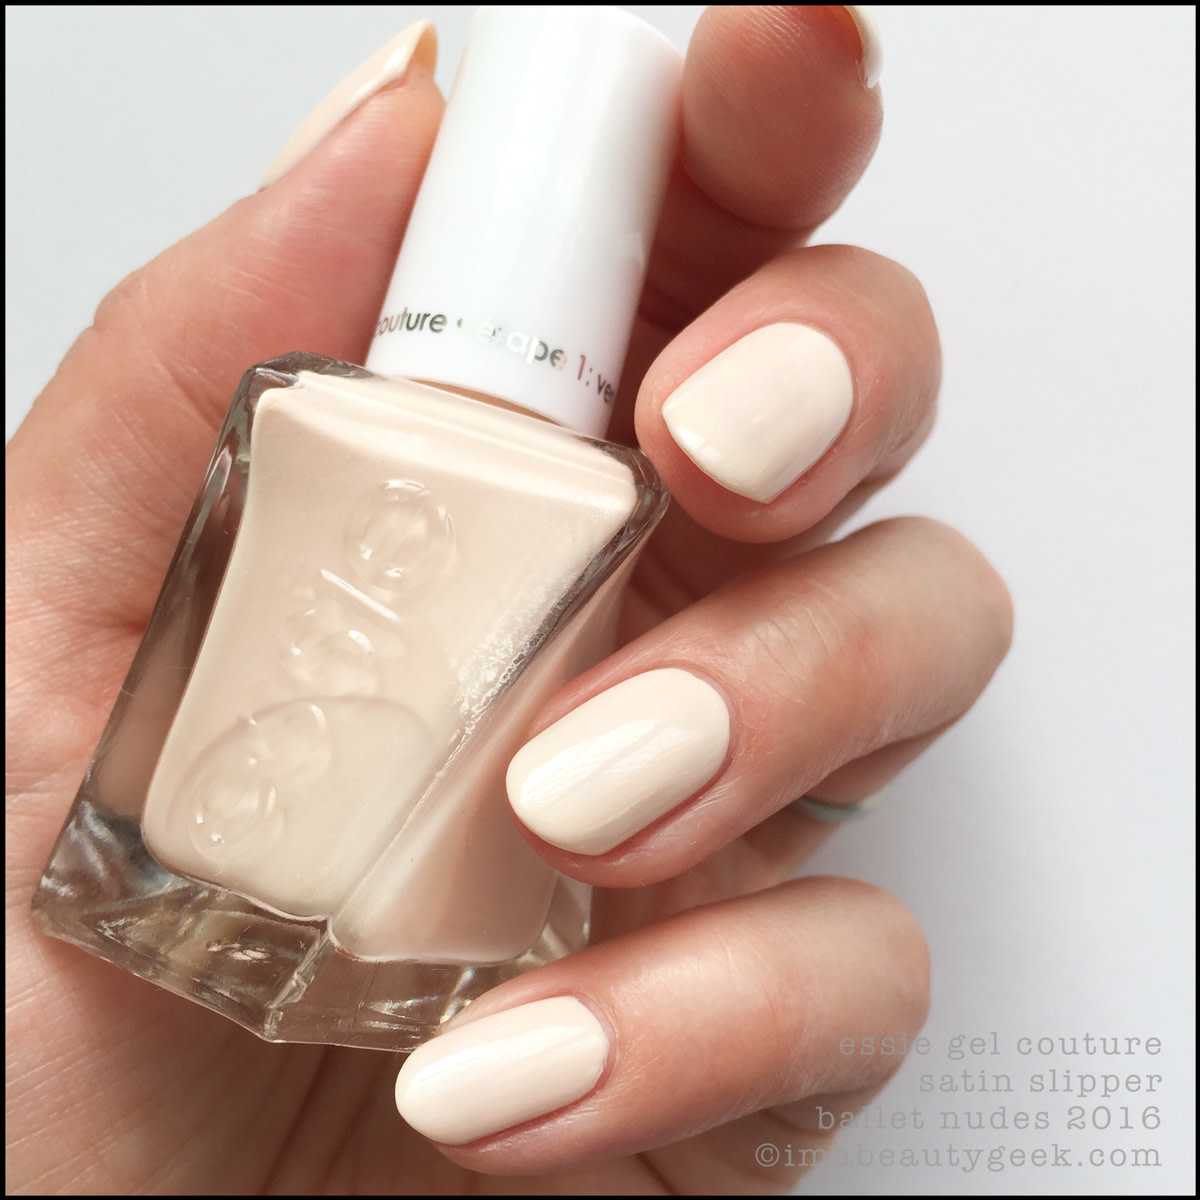 Essie Gel Couture Satin Slipper_Essie Gel Couture Ballet Nudes Swatches Review 2016